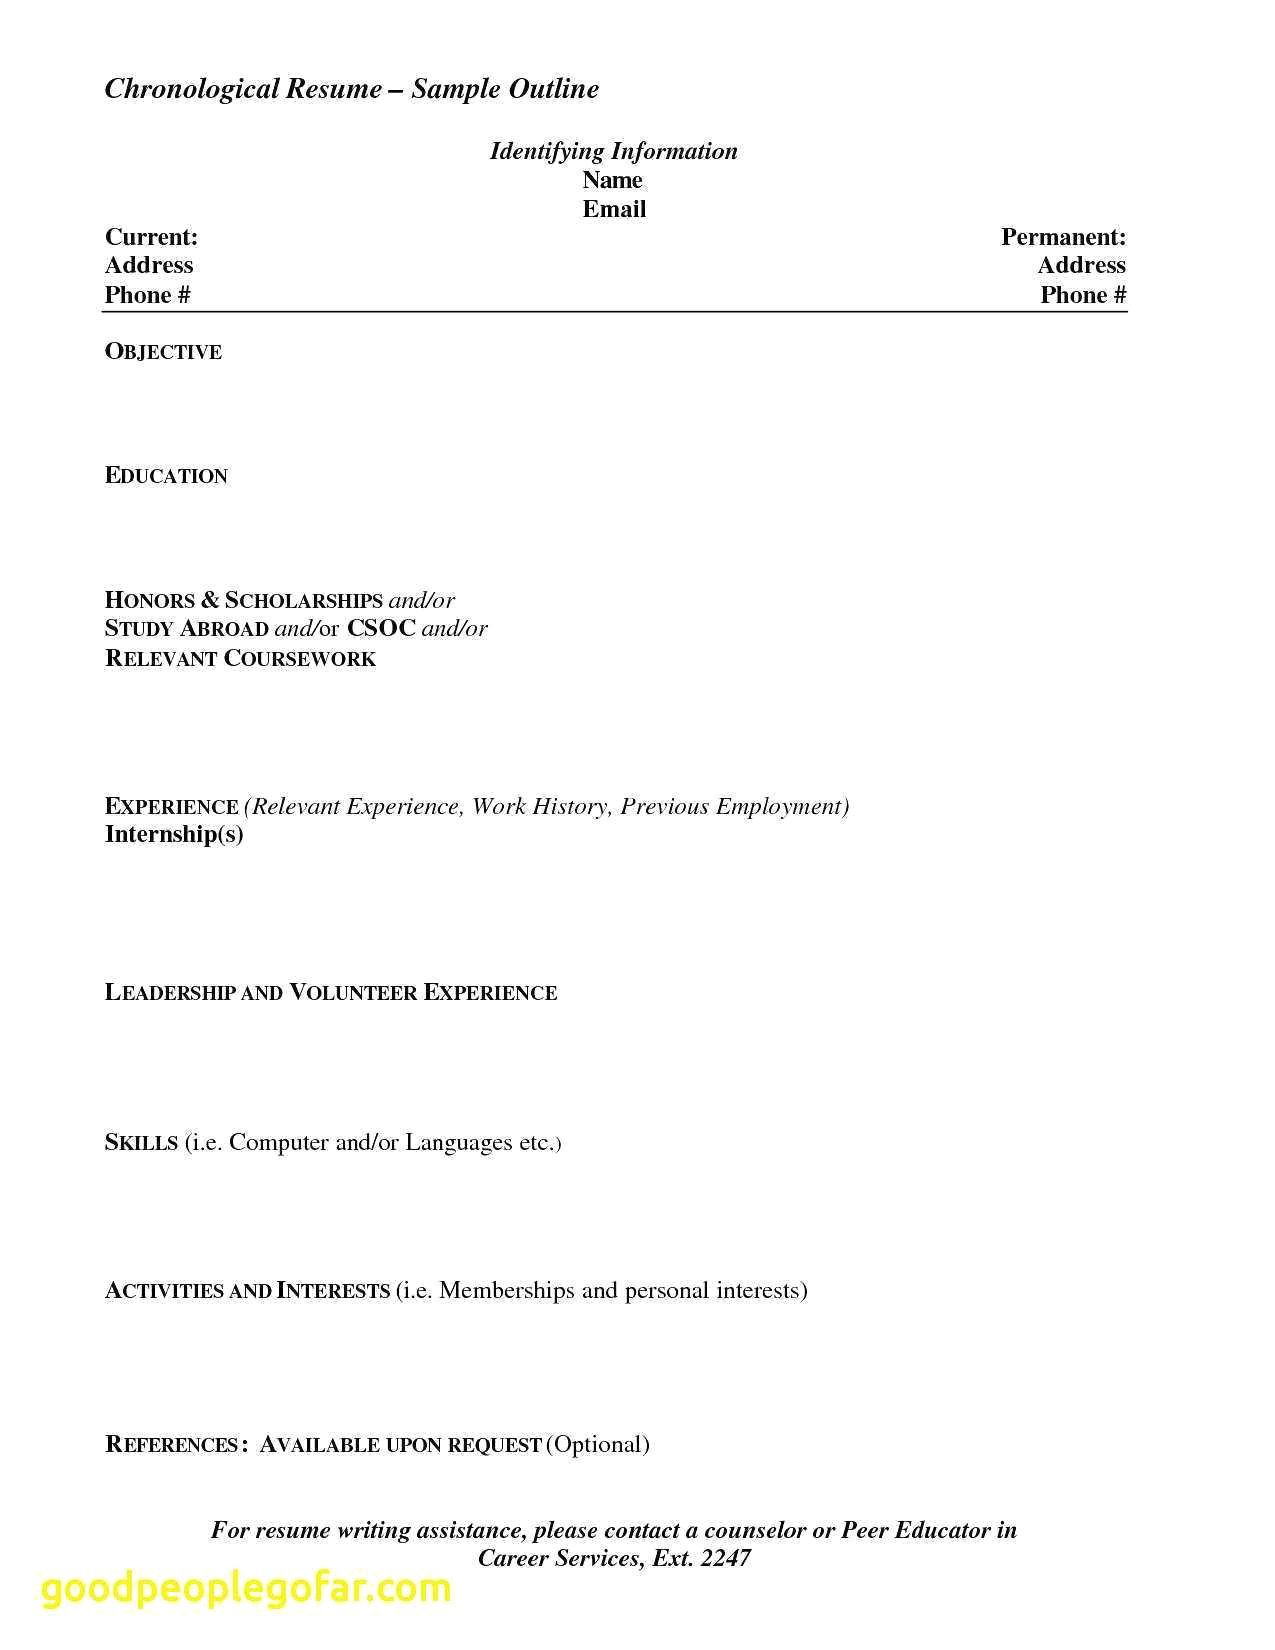 resume for insurance agent Collection-Page Resume Template New Cover Page for Resume Awesome formatted Resume 0d Professional insurance agent 15-e